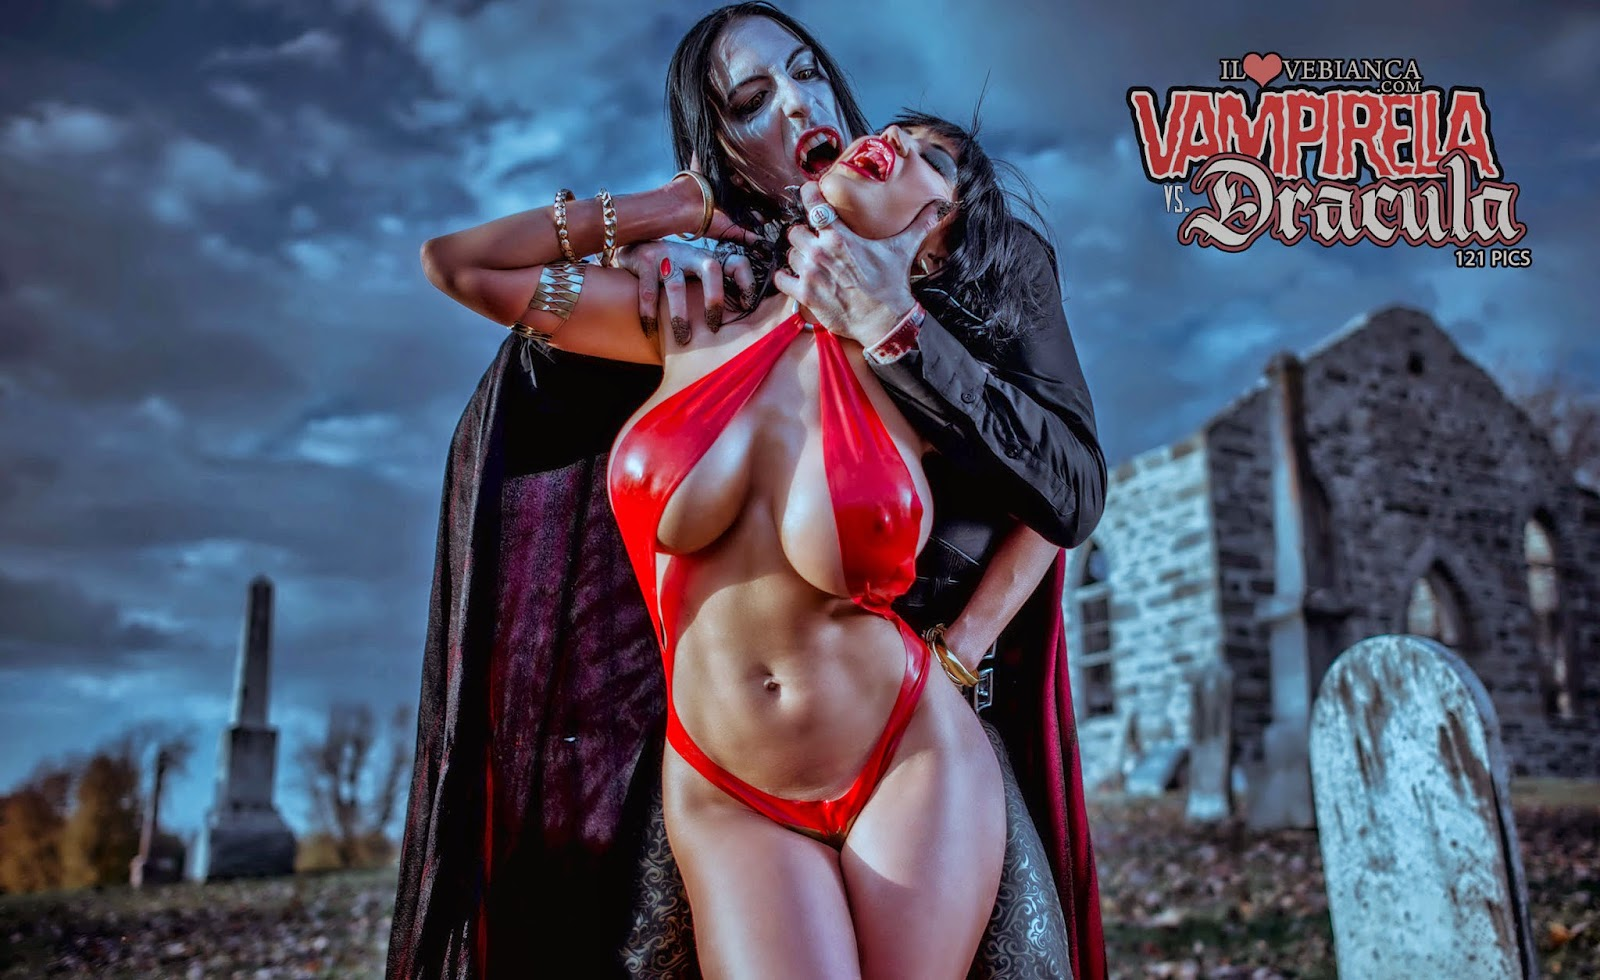 Vampirella 3d sex nude video